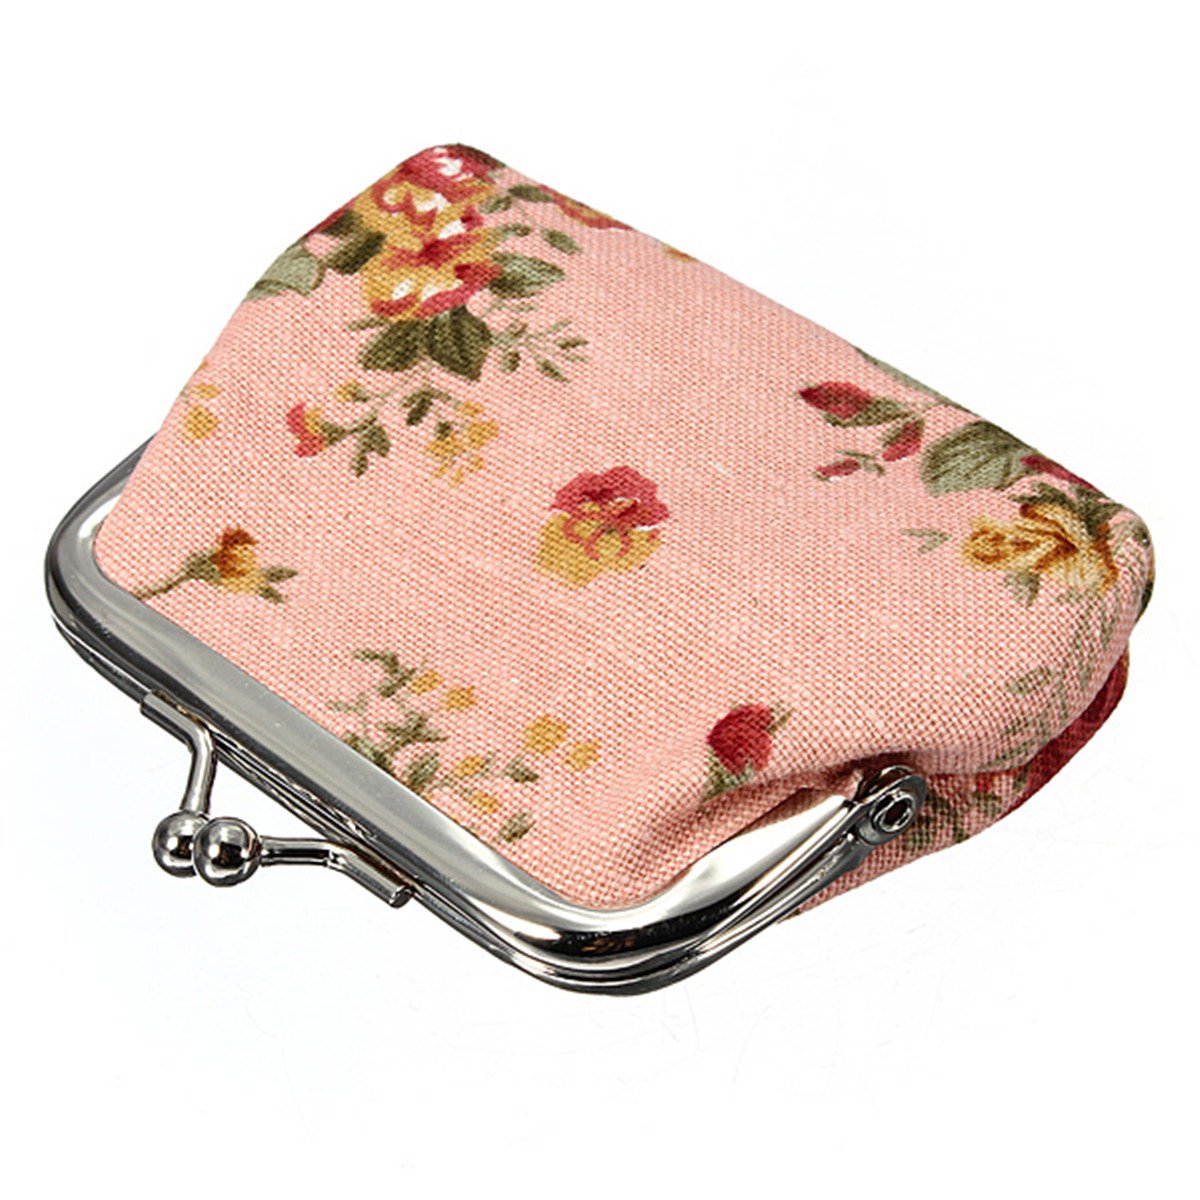 2016 Hot StyleWomen Roses Floral Fabric Clip Mini Small Coin Pocket Purse Bag Clutch